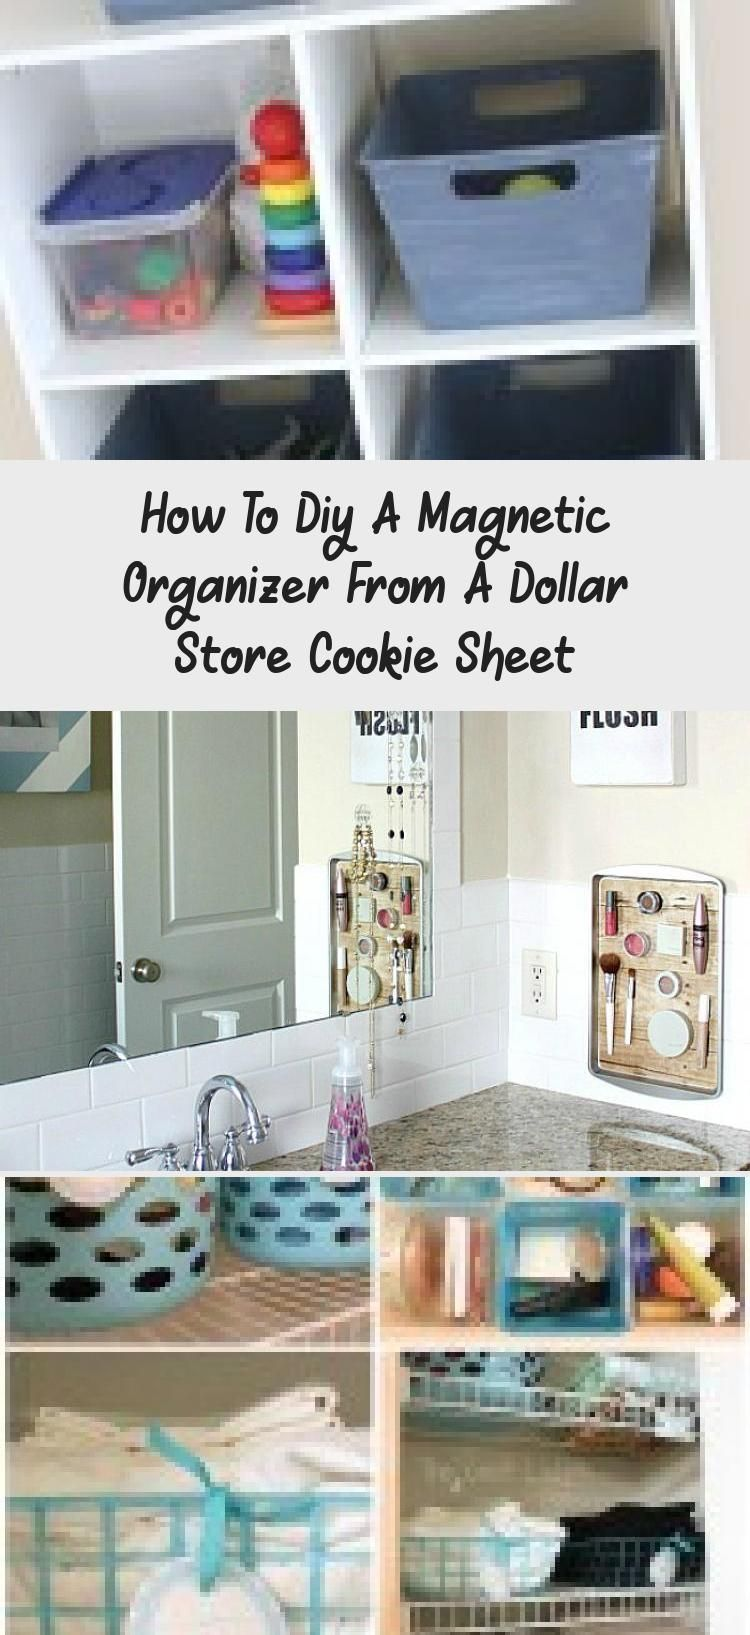 Transform a simple Dollar Store cookie sheet into a handy